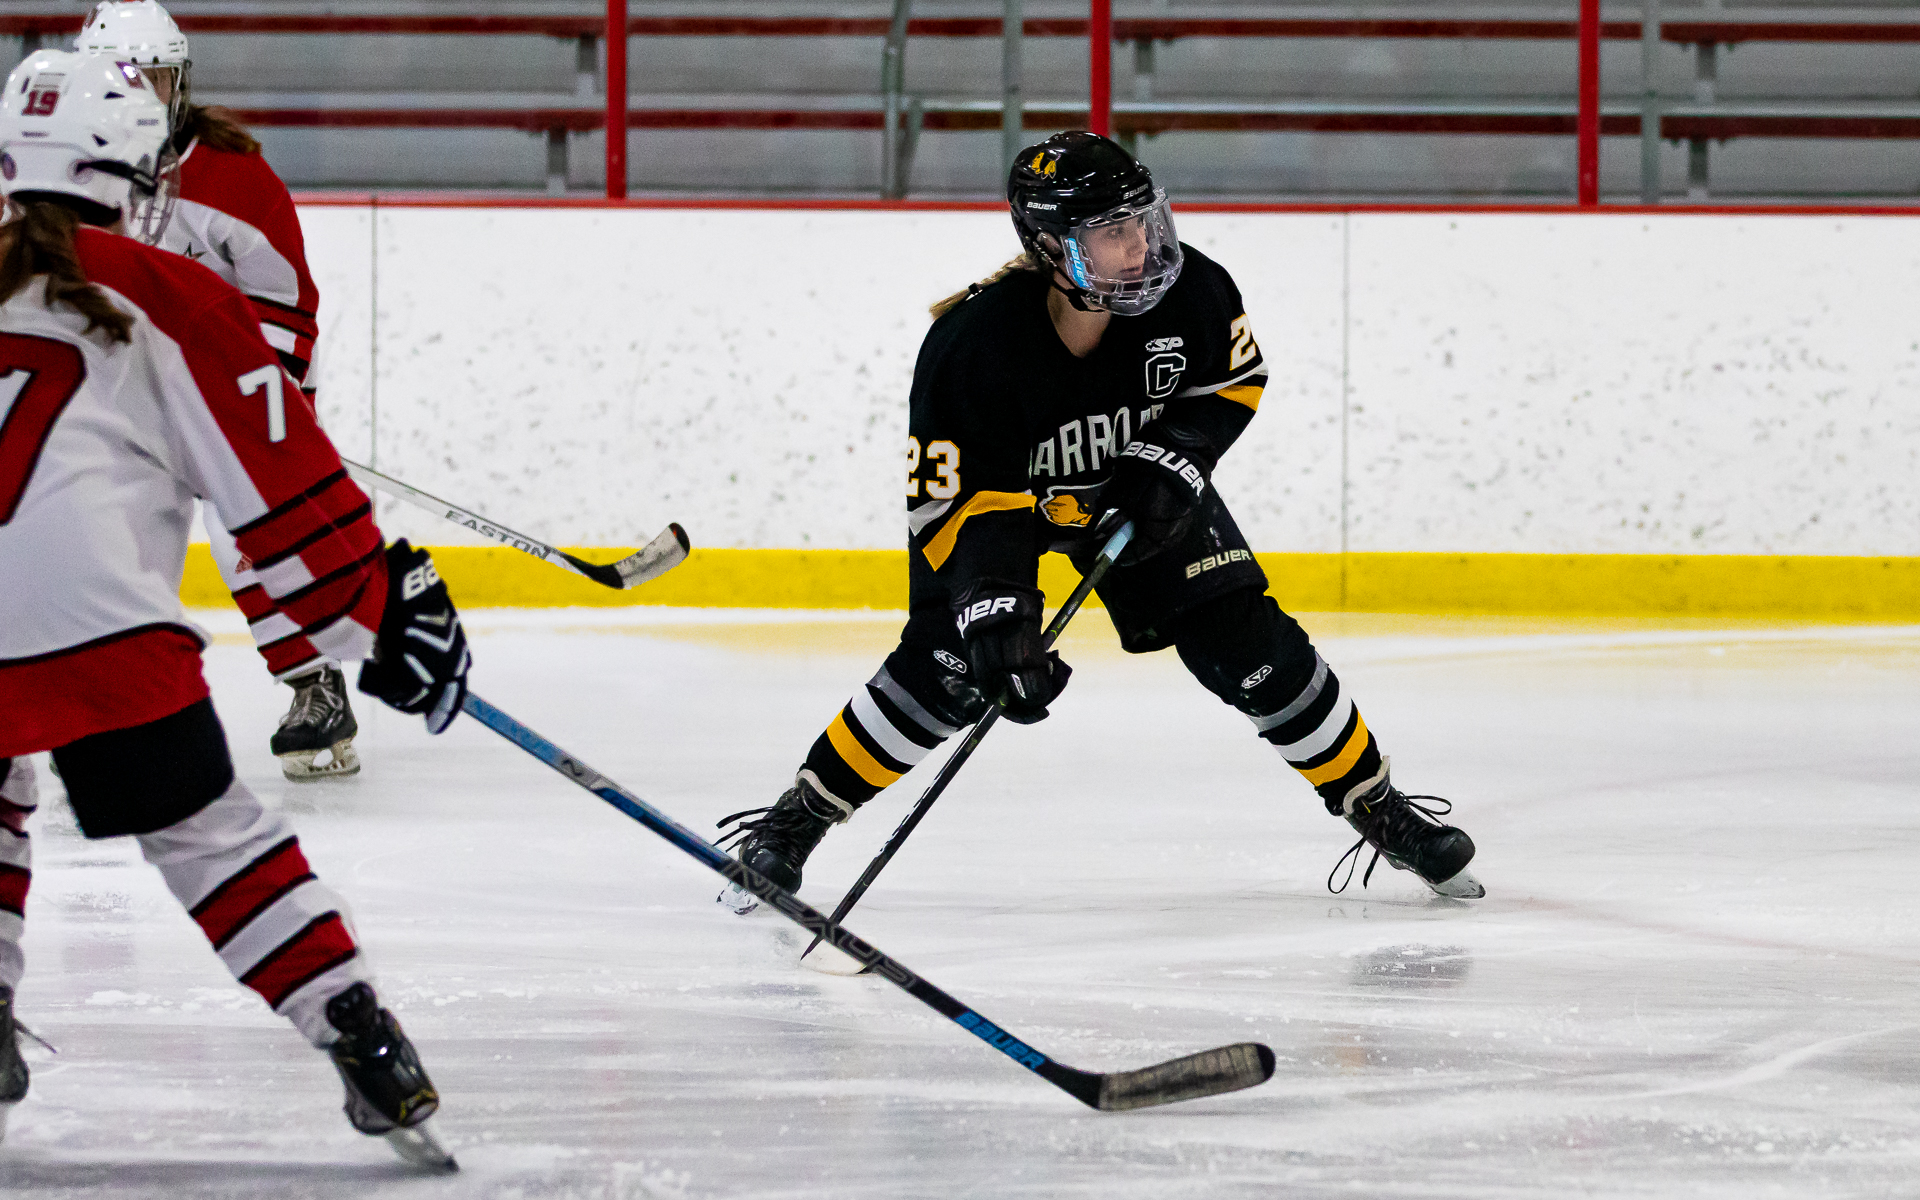 Warroad's Hannah Corneliusen scored her first of two goals Friday, as the Warriors defeated Lakeville North 4-1 at Ames Arena. Photo by Gary Mukai, SportsEngine